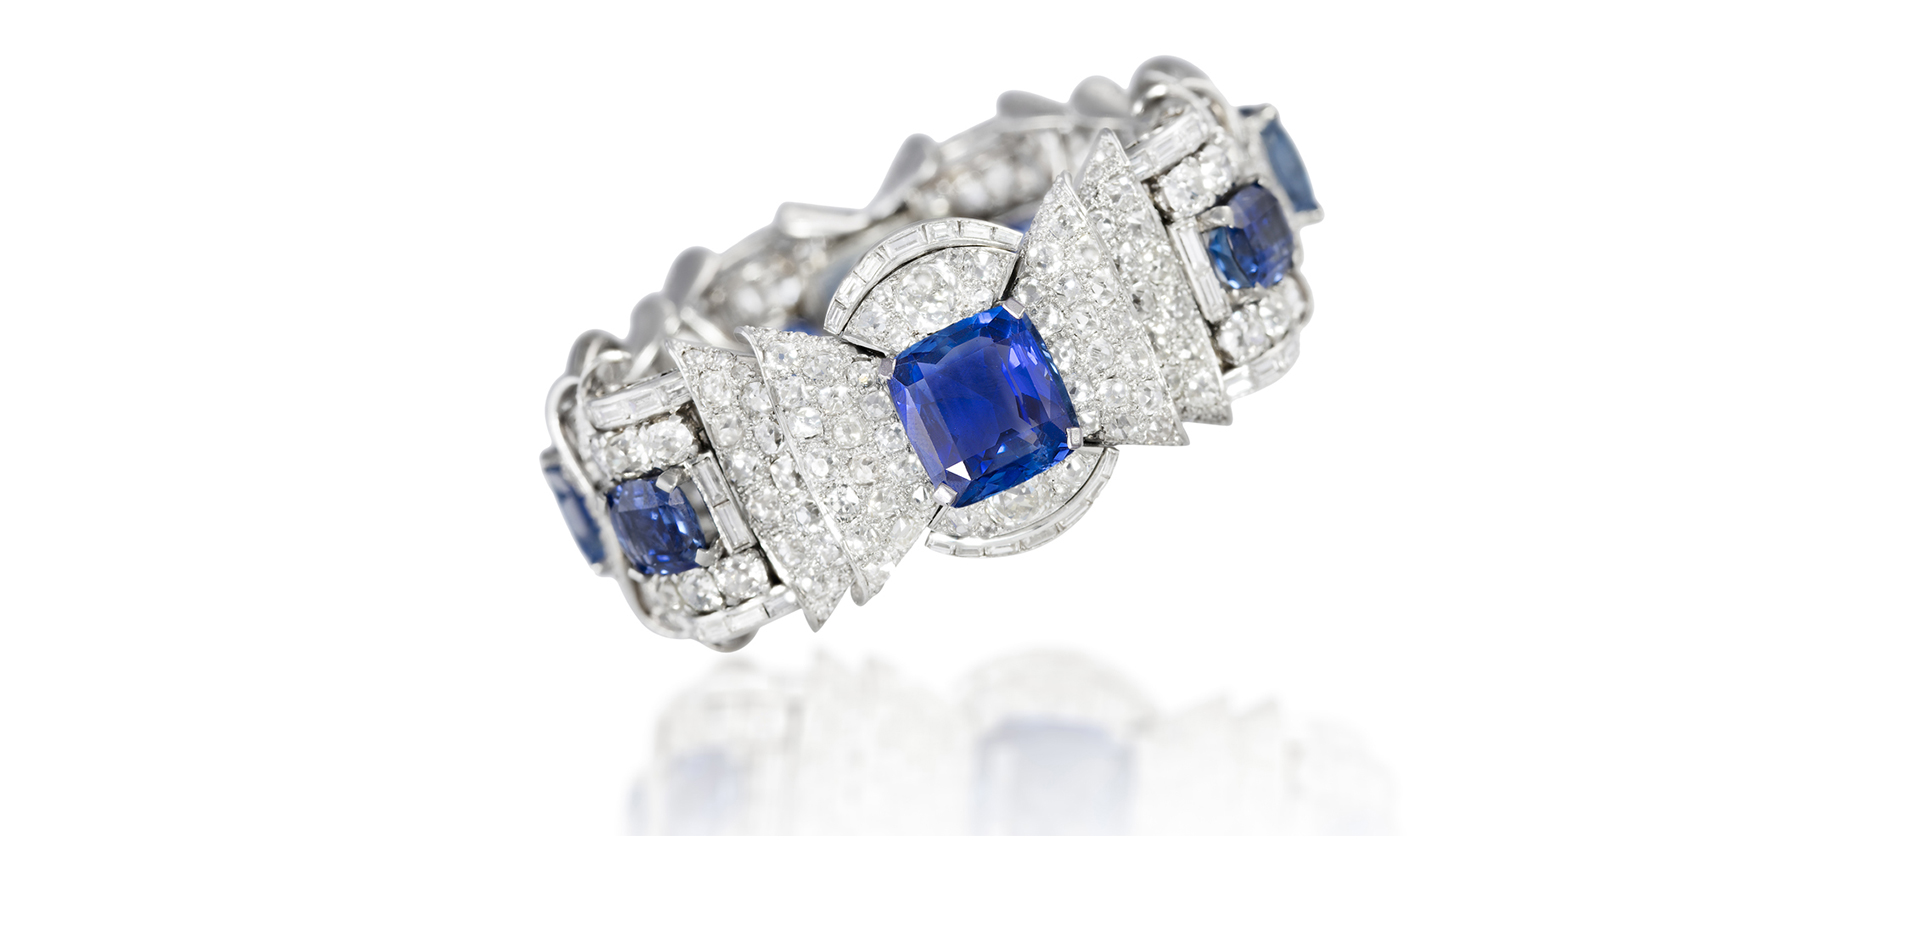 AN IMPORTANT AND ELEGANT SAPPHIRE AND DIAMOND BRACELET, CIRCA 1950 - Sold For €66,000